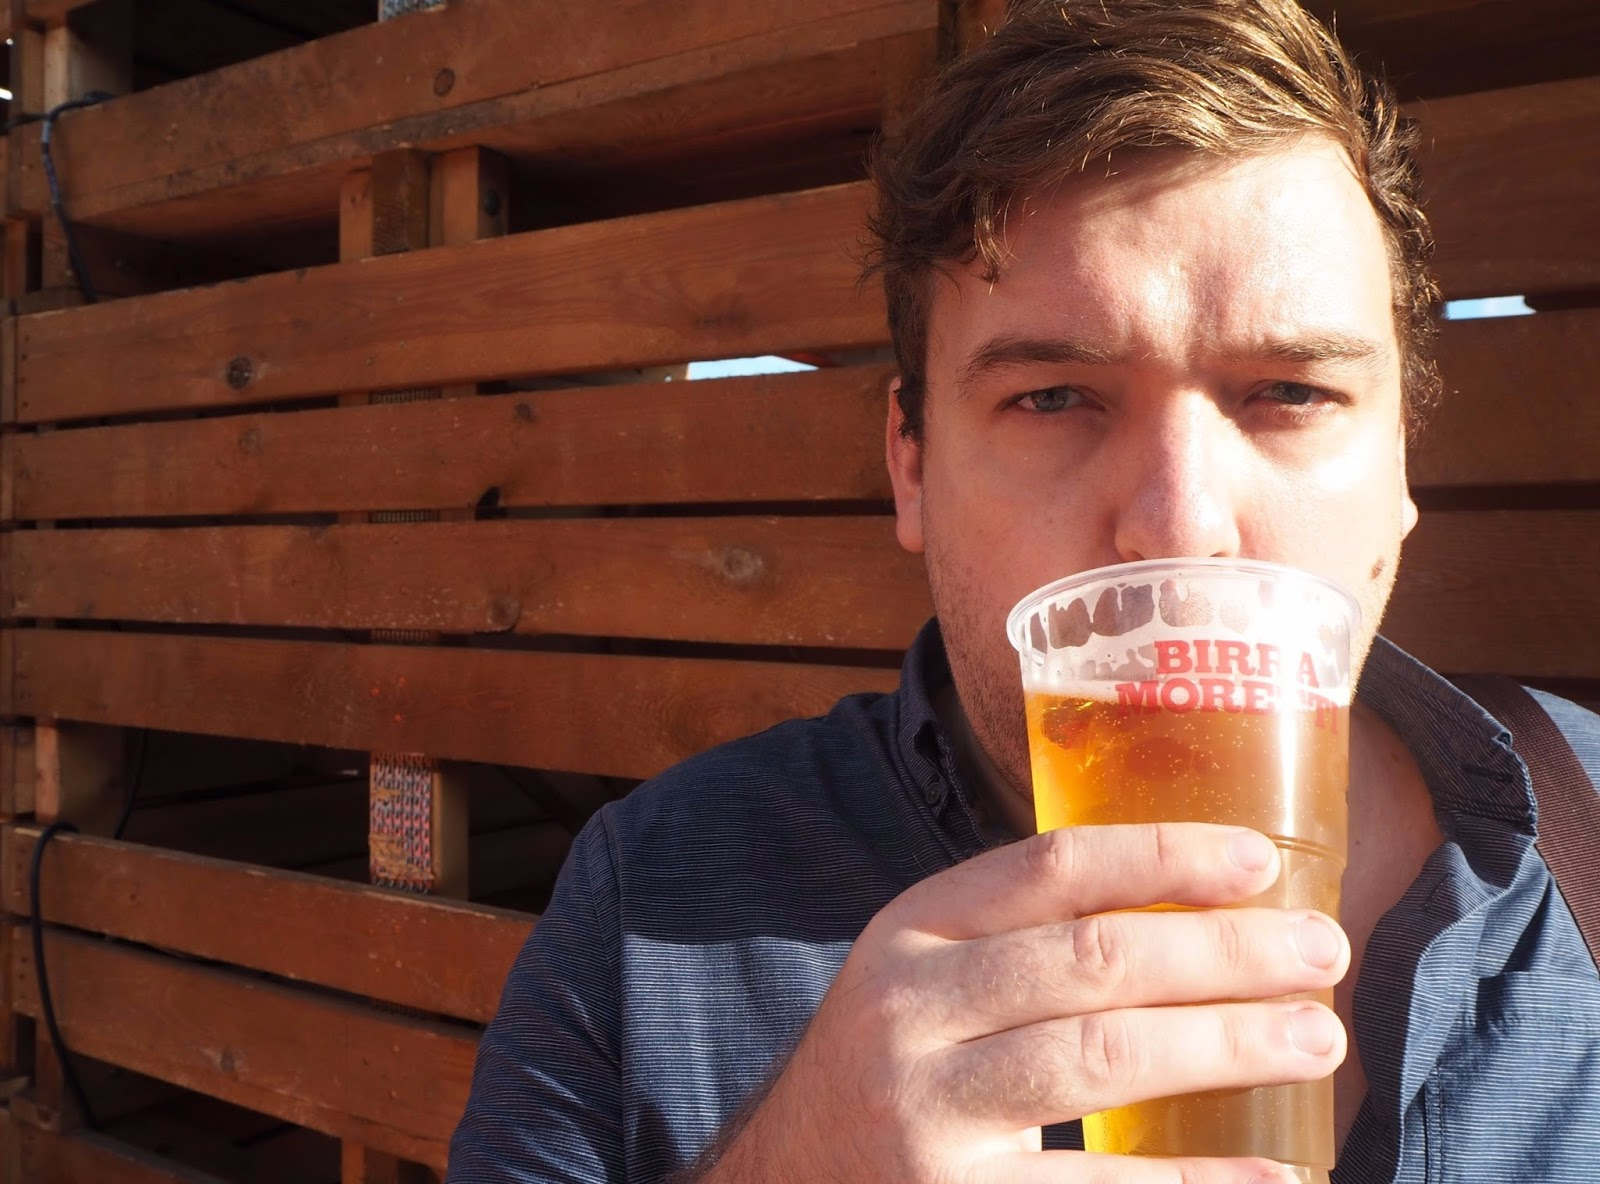 Sam sipping beer